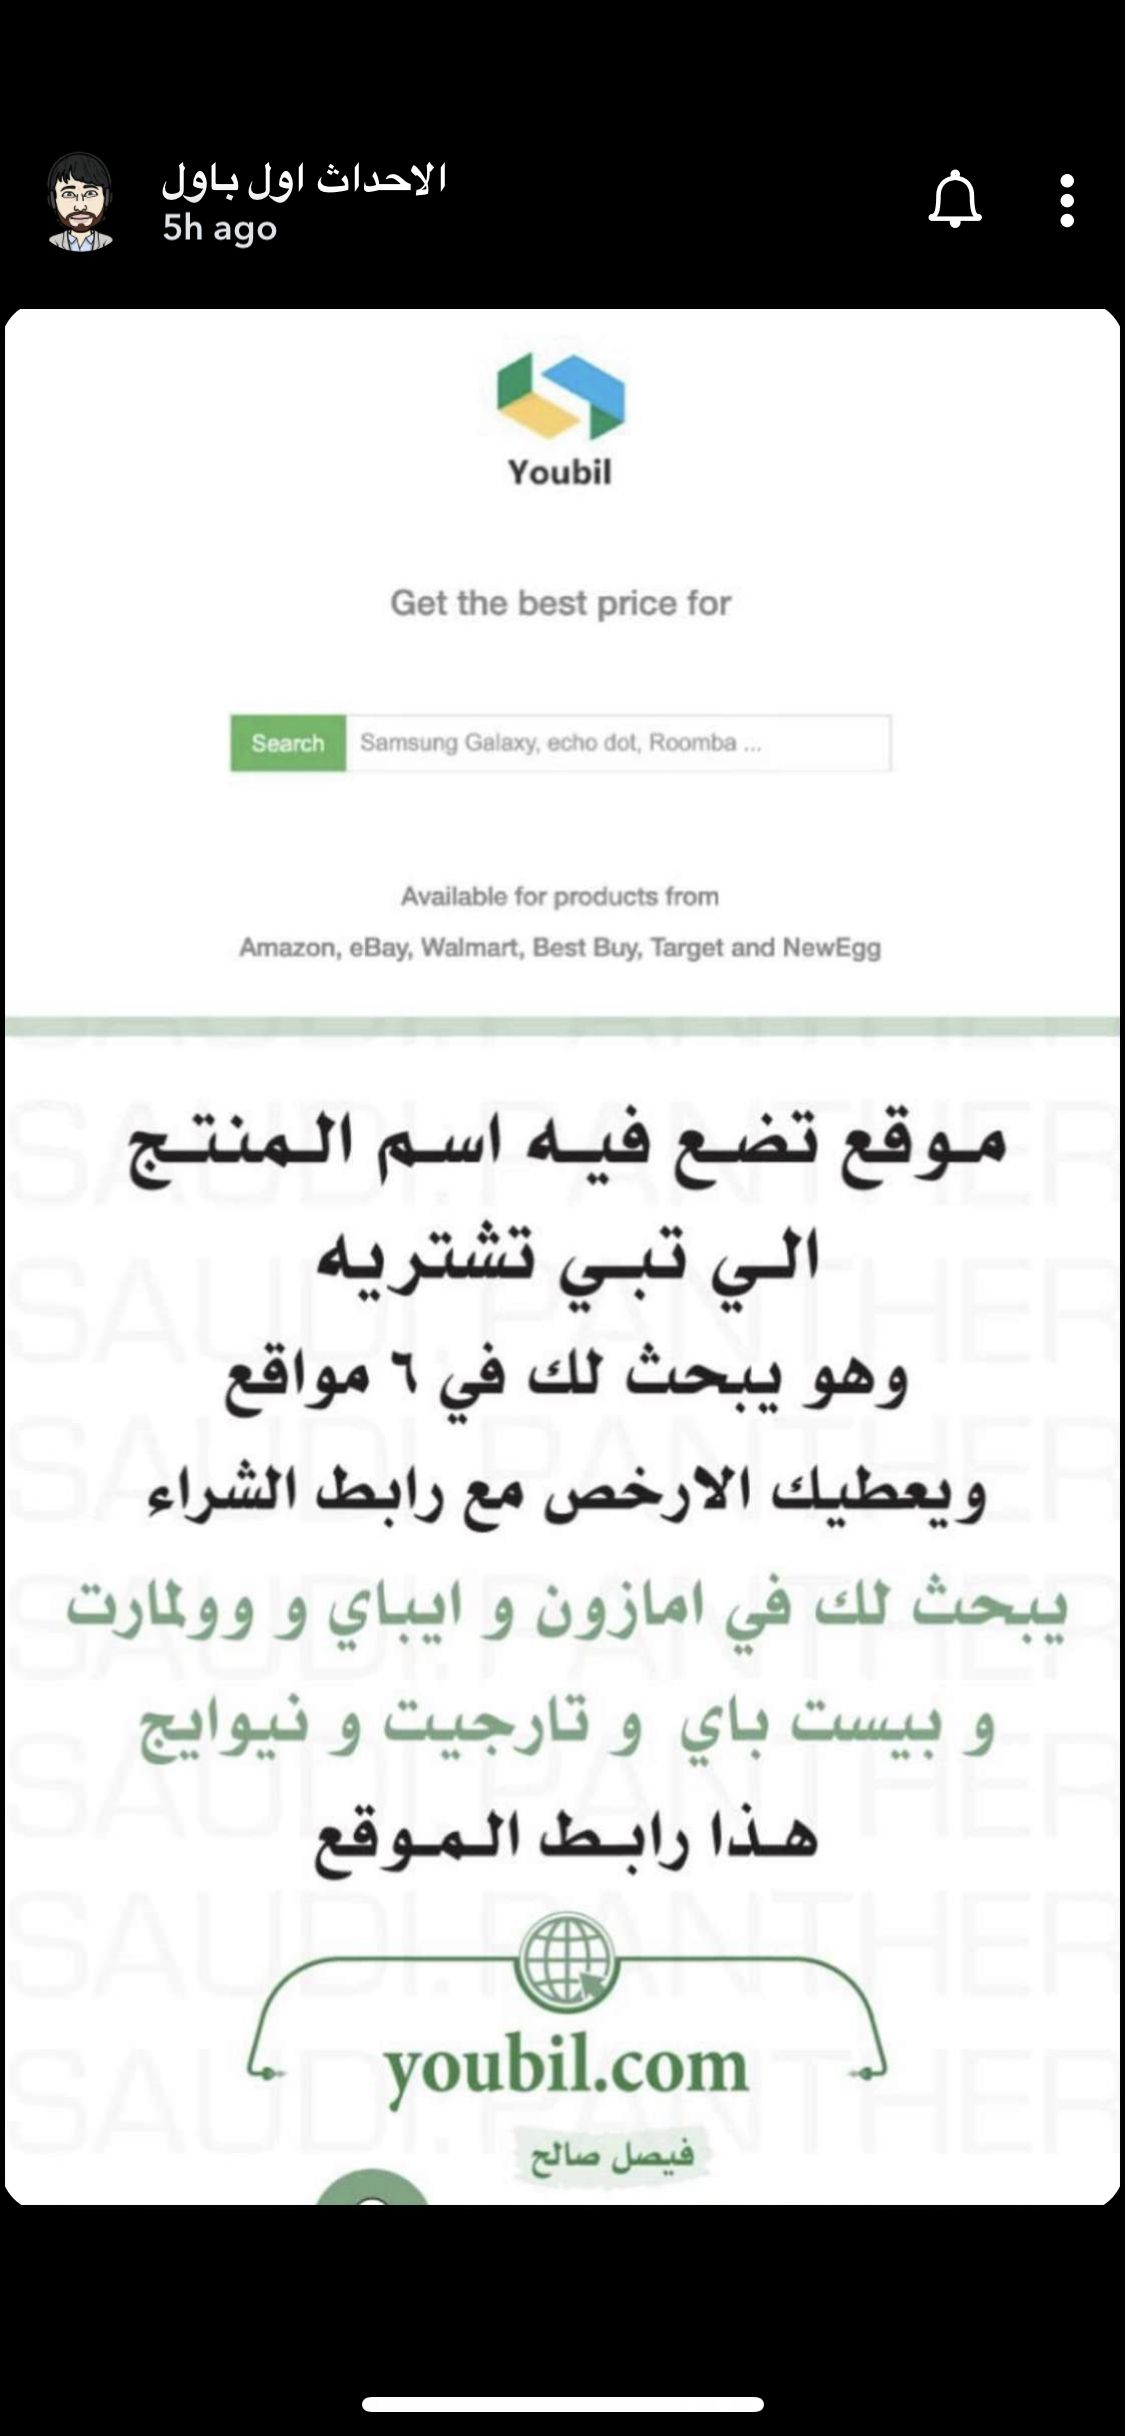 Pin By Imane Doumali On مواقع و تطبيقات Learning Websites Programming Apps App Pictures